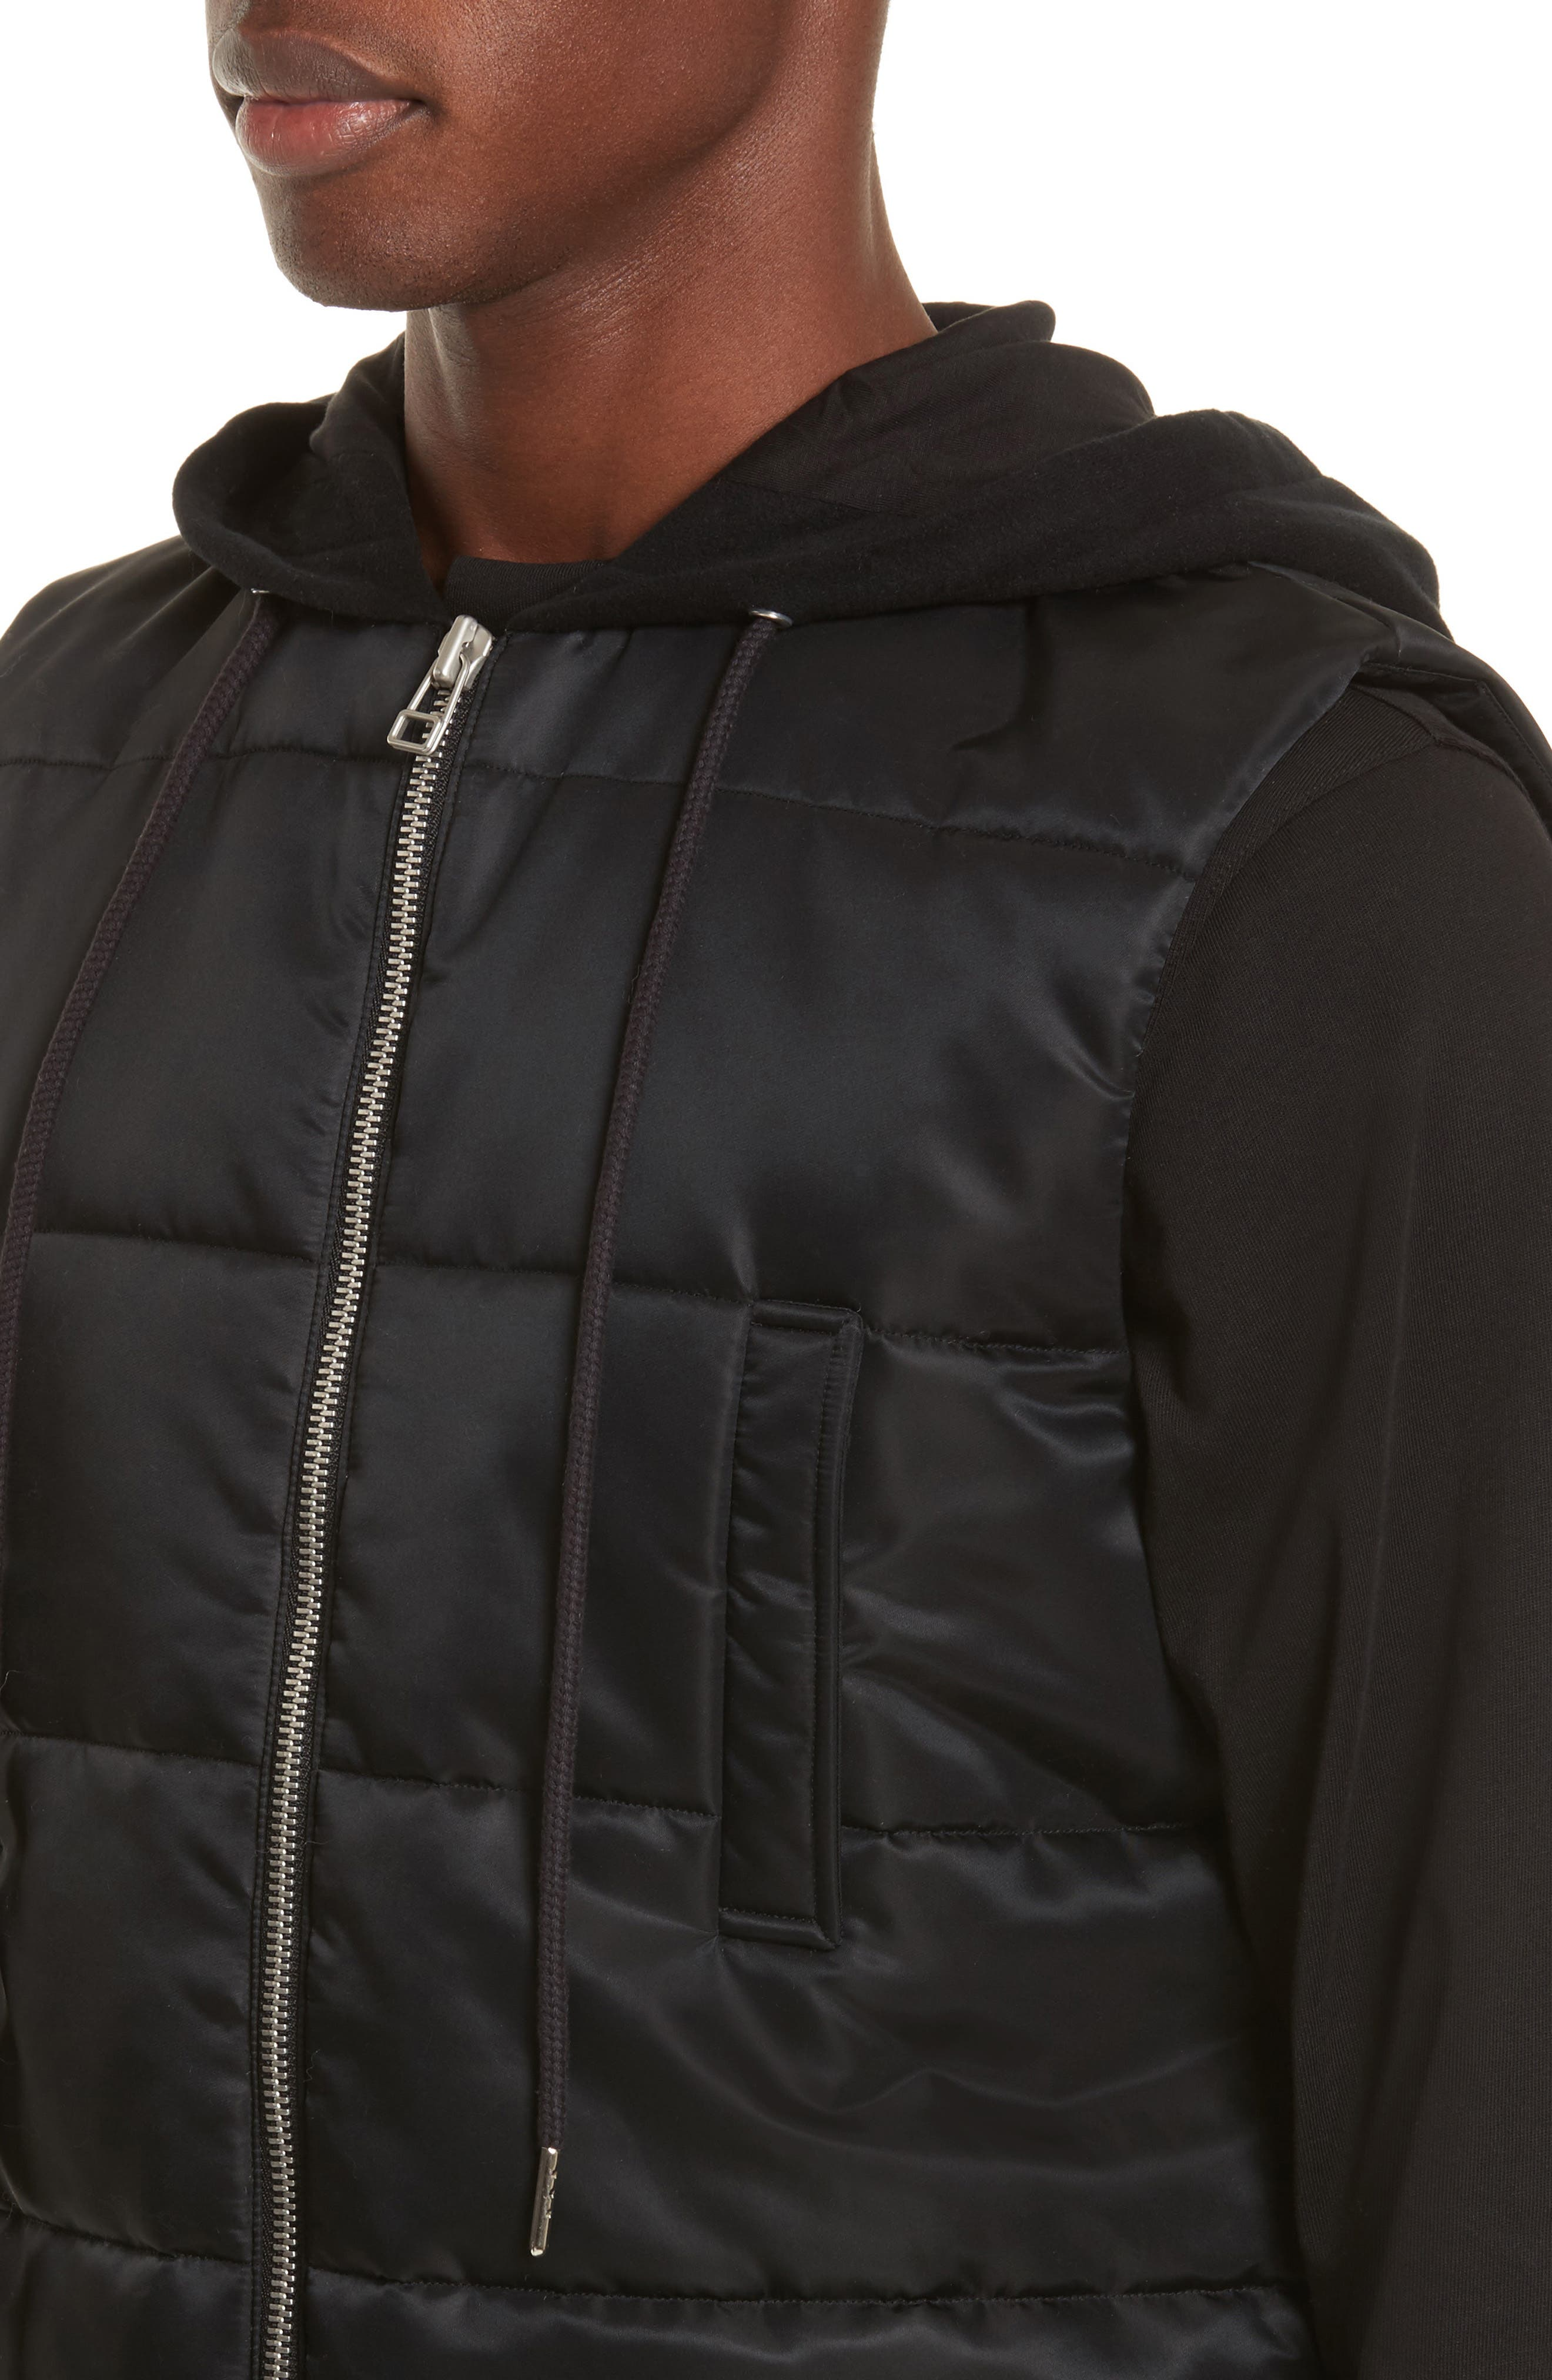 Hooded Puffer Vest,                             Alternate thumbnail 4, color,                             001